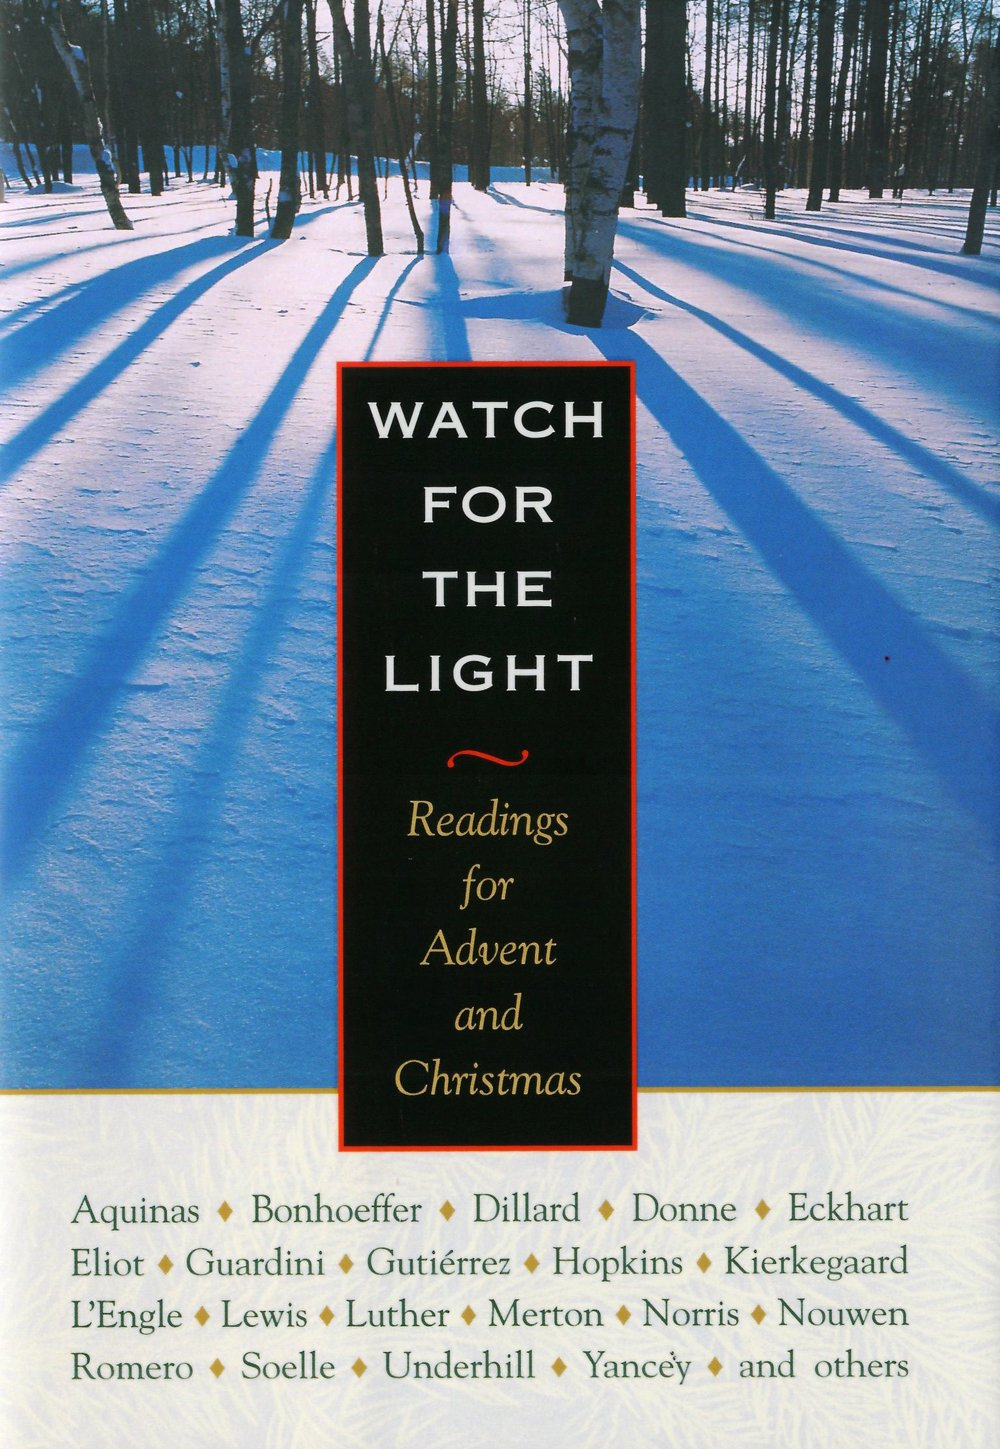 Watch for the light readings for advent and christmas dietrich watch for the light readings for advent and christmas dietrich bonhoeffer annie dillard thomas merton c s lewis henri j m nouwen john donne fandeluxe Gallery